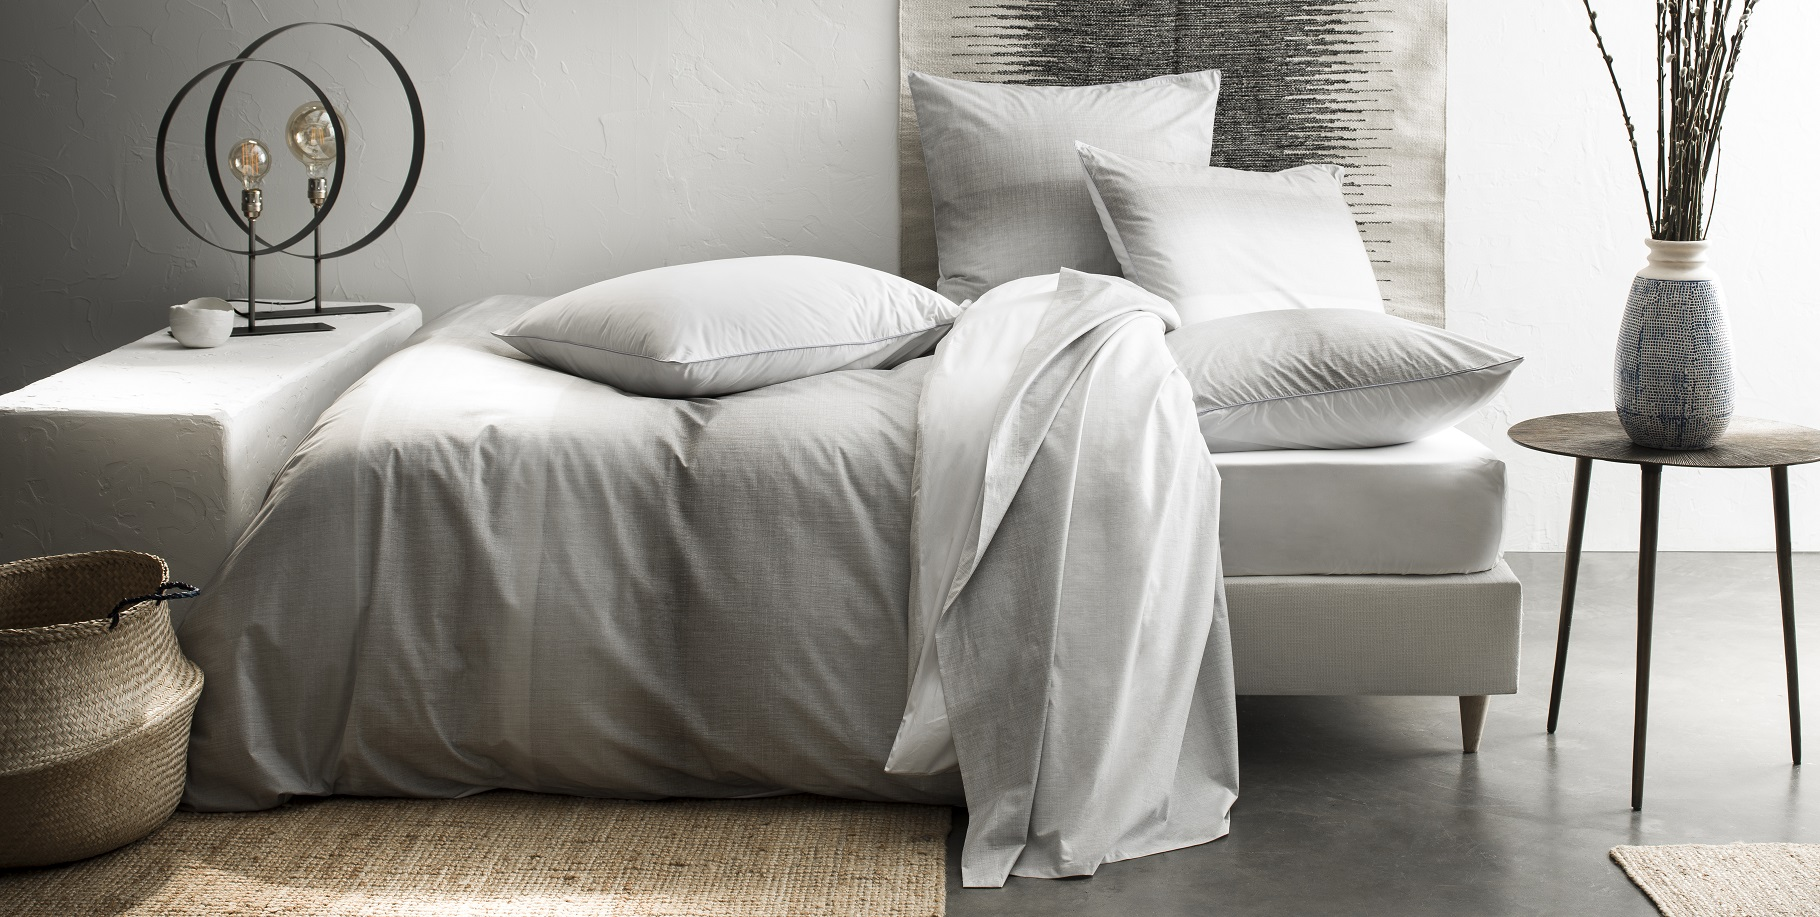 linge de lit en percale de coton. Black Bedroom Furniture Sets. Home Design Ideas